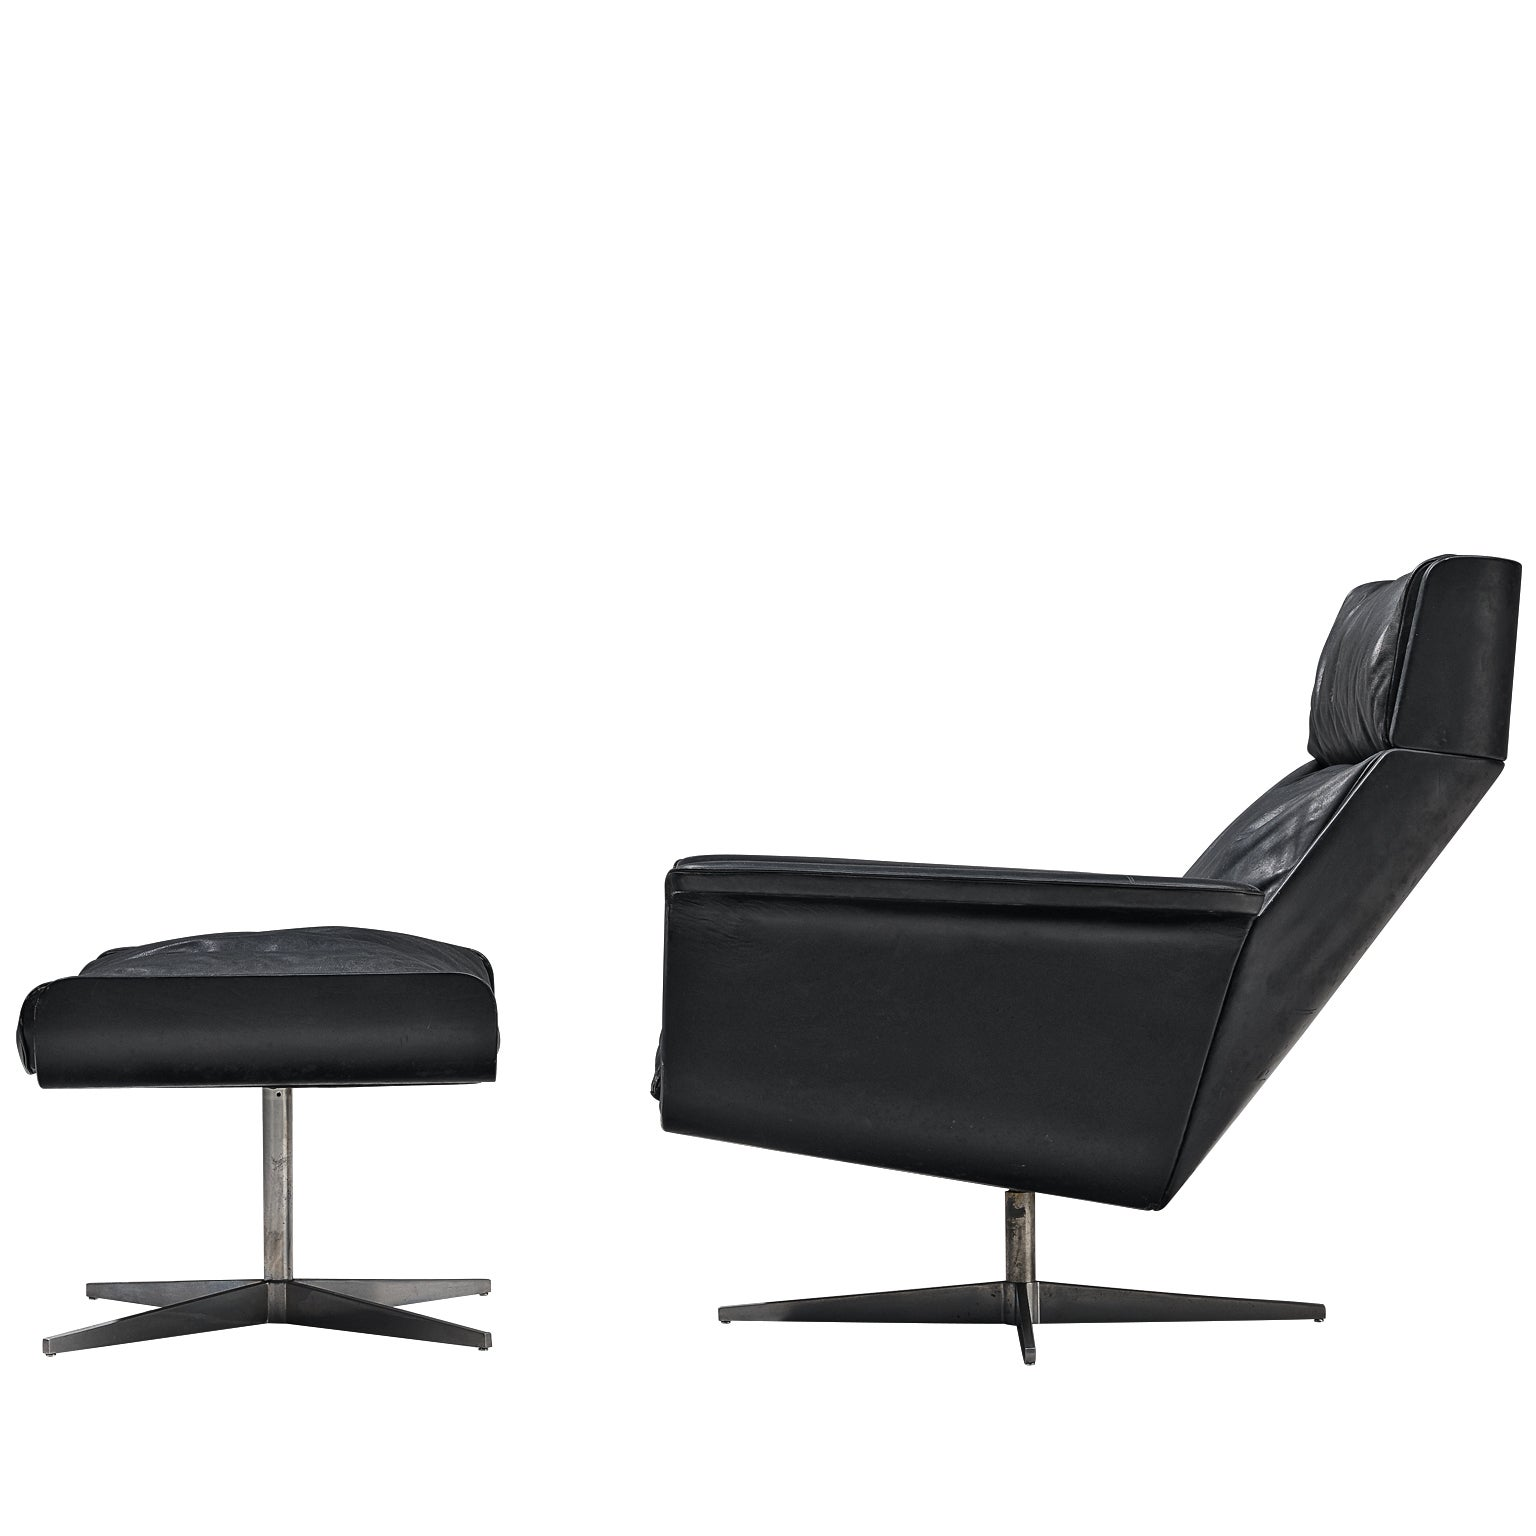 Modernist Swivel Lounge Chair with Ottoman in Black Leather